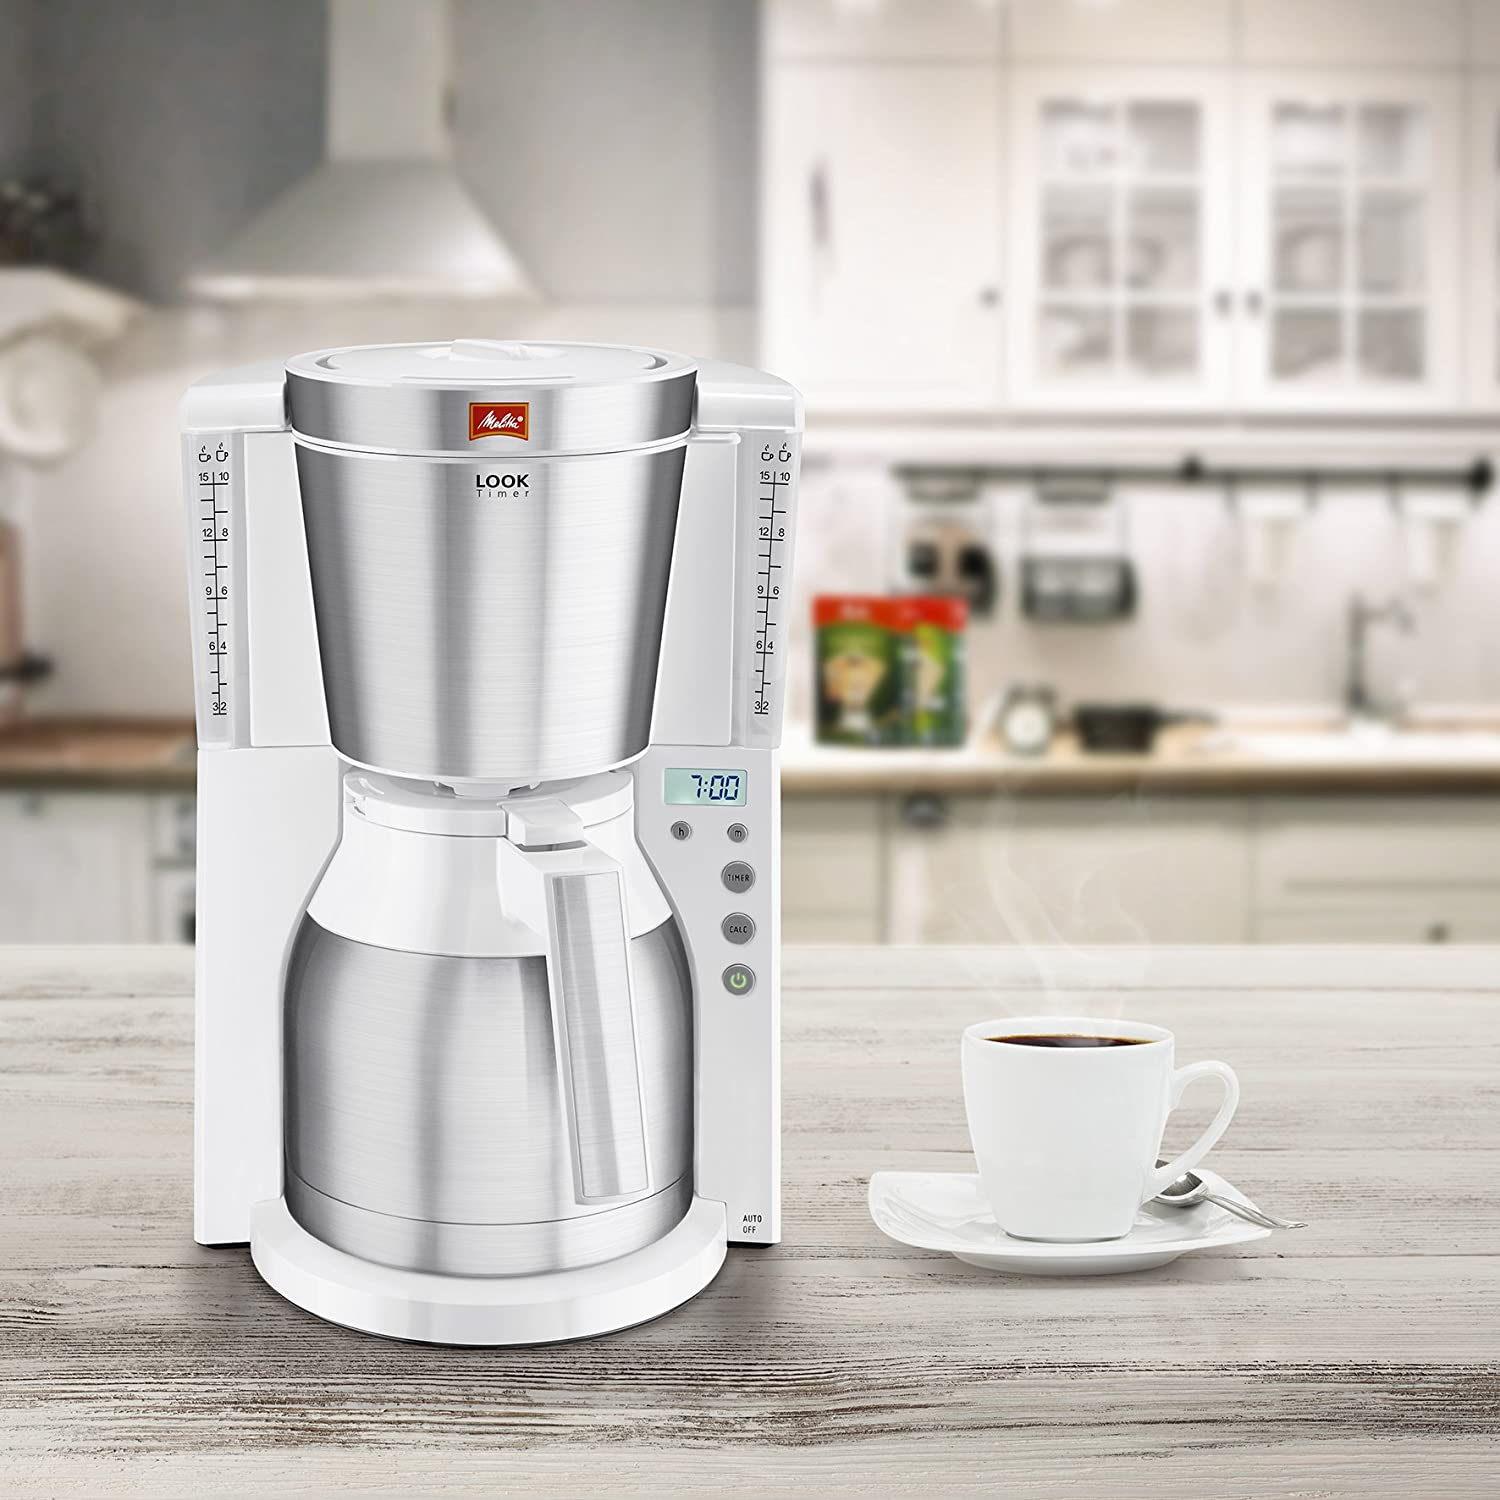 Melitta Non Electric Coffee Maker : Melitta Look IV Therm Timer Filter Coffee Maker - Programmable Machine with Jug eBay